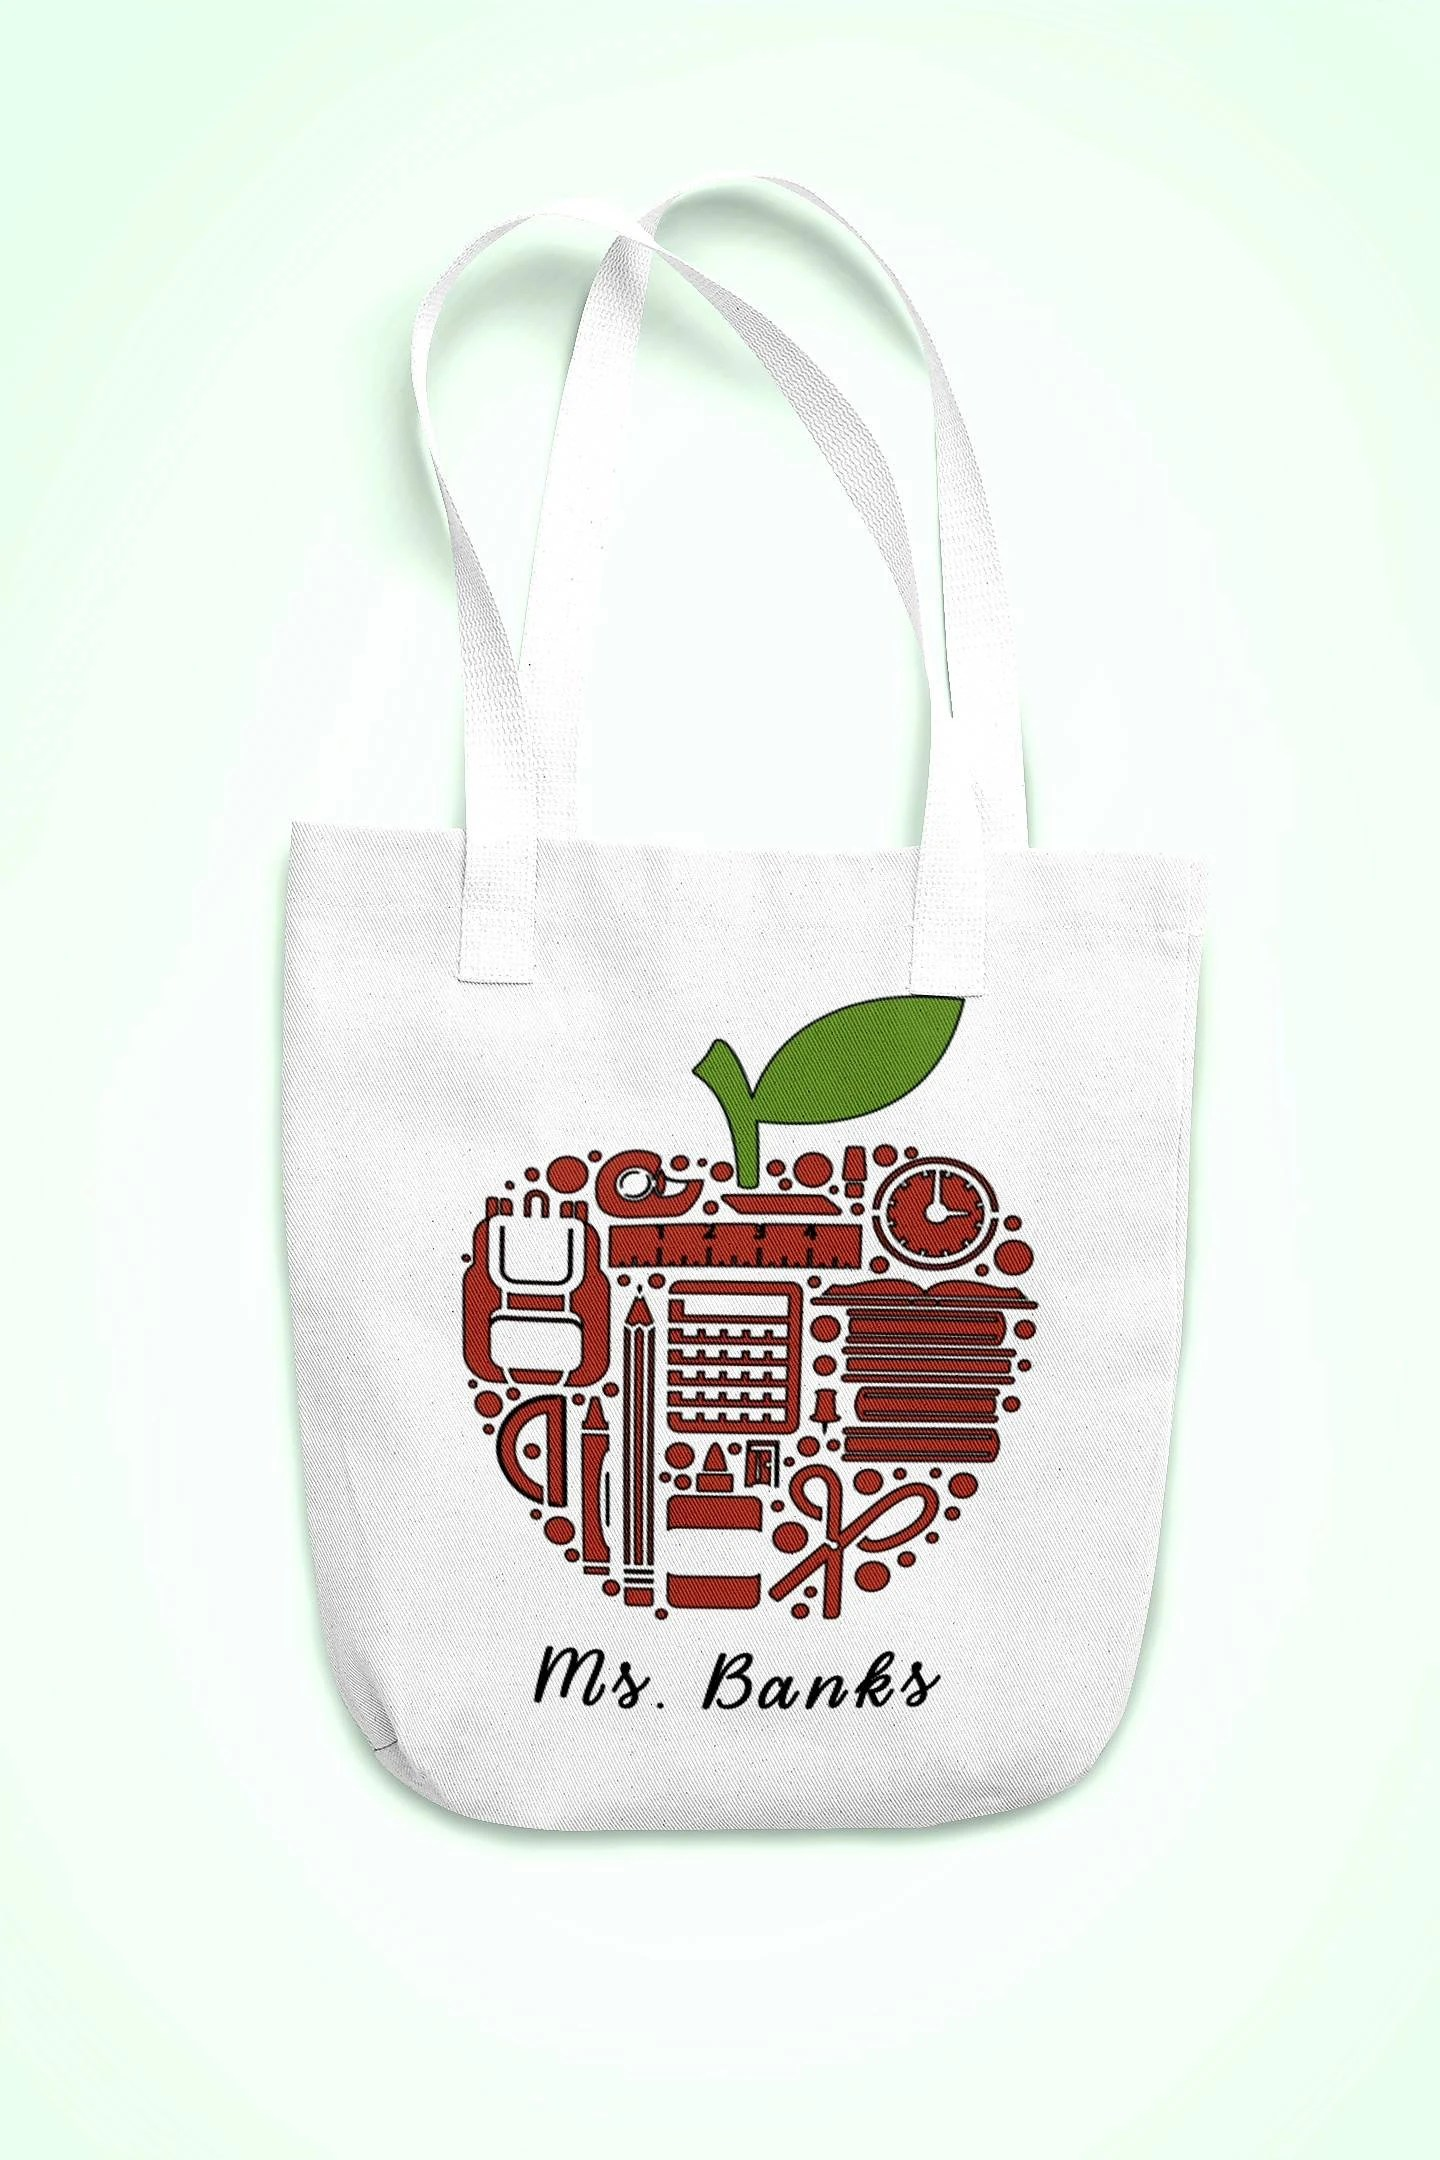 Personalized canvas tote bag for teachers gifts for teacher image 2